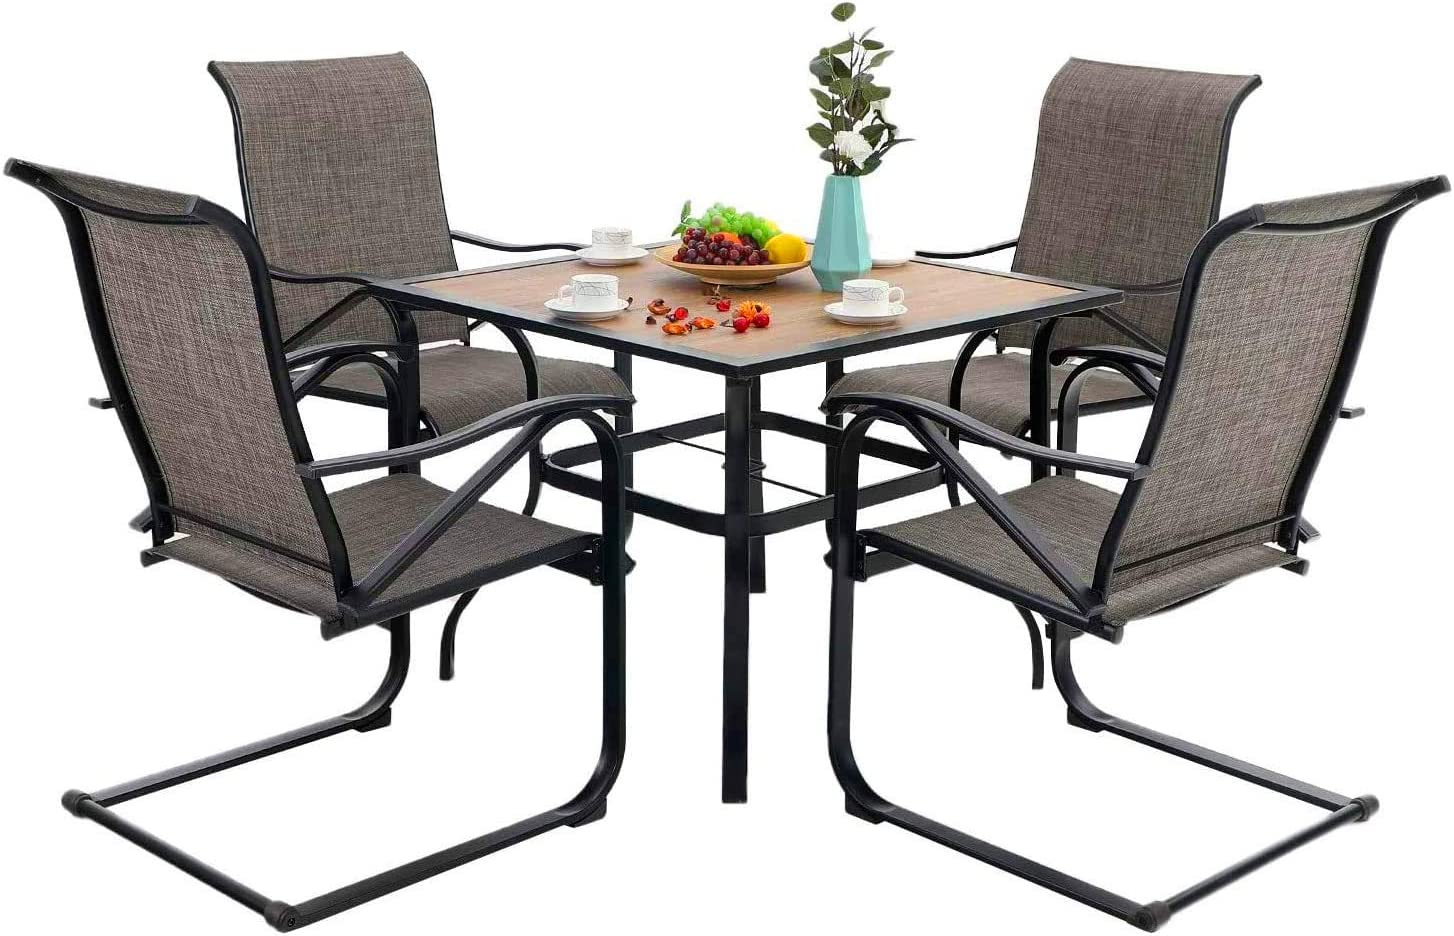 PHI VILLA 5 Piece Outdoor Dining Table Set for 4, Wood Top Metal Dining Table with Umbrella Hole & 4 Spring Sling Chairs for Patio, Deck, Yard